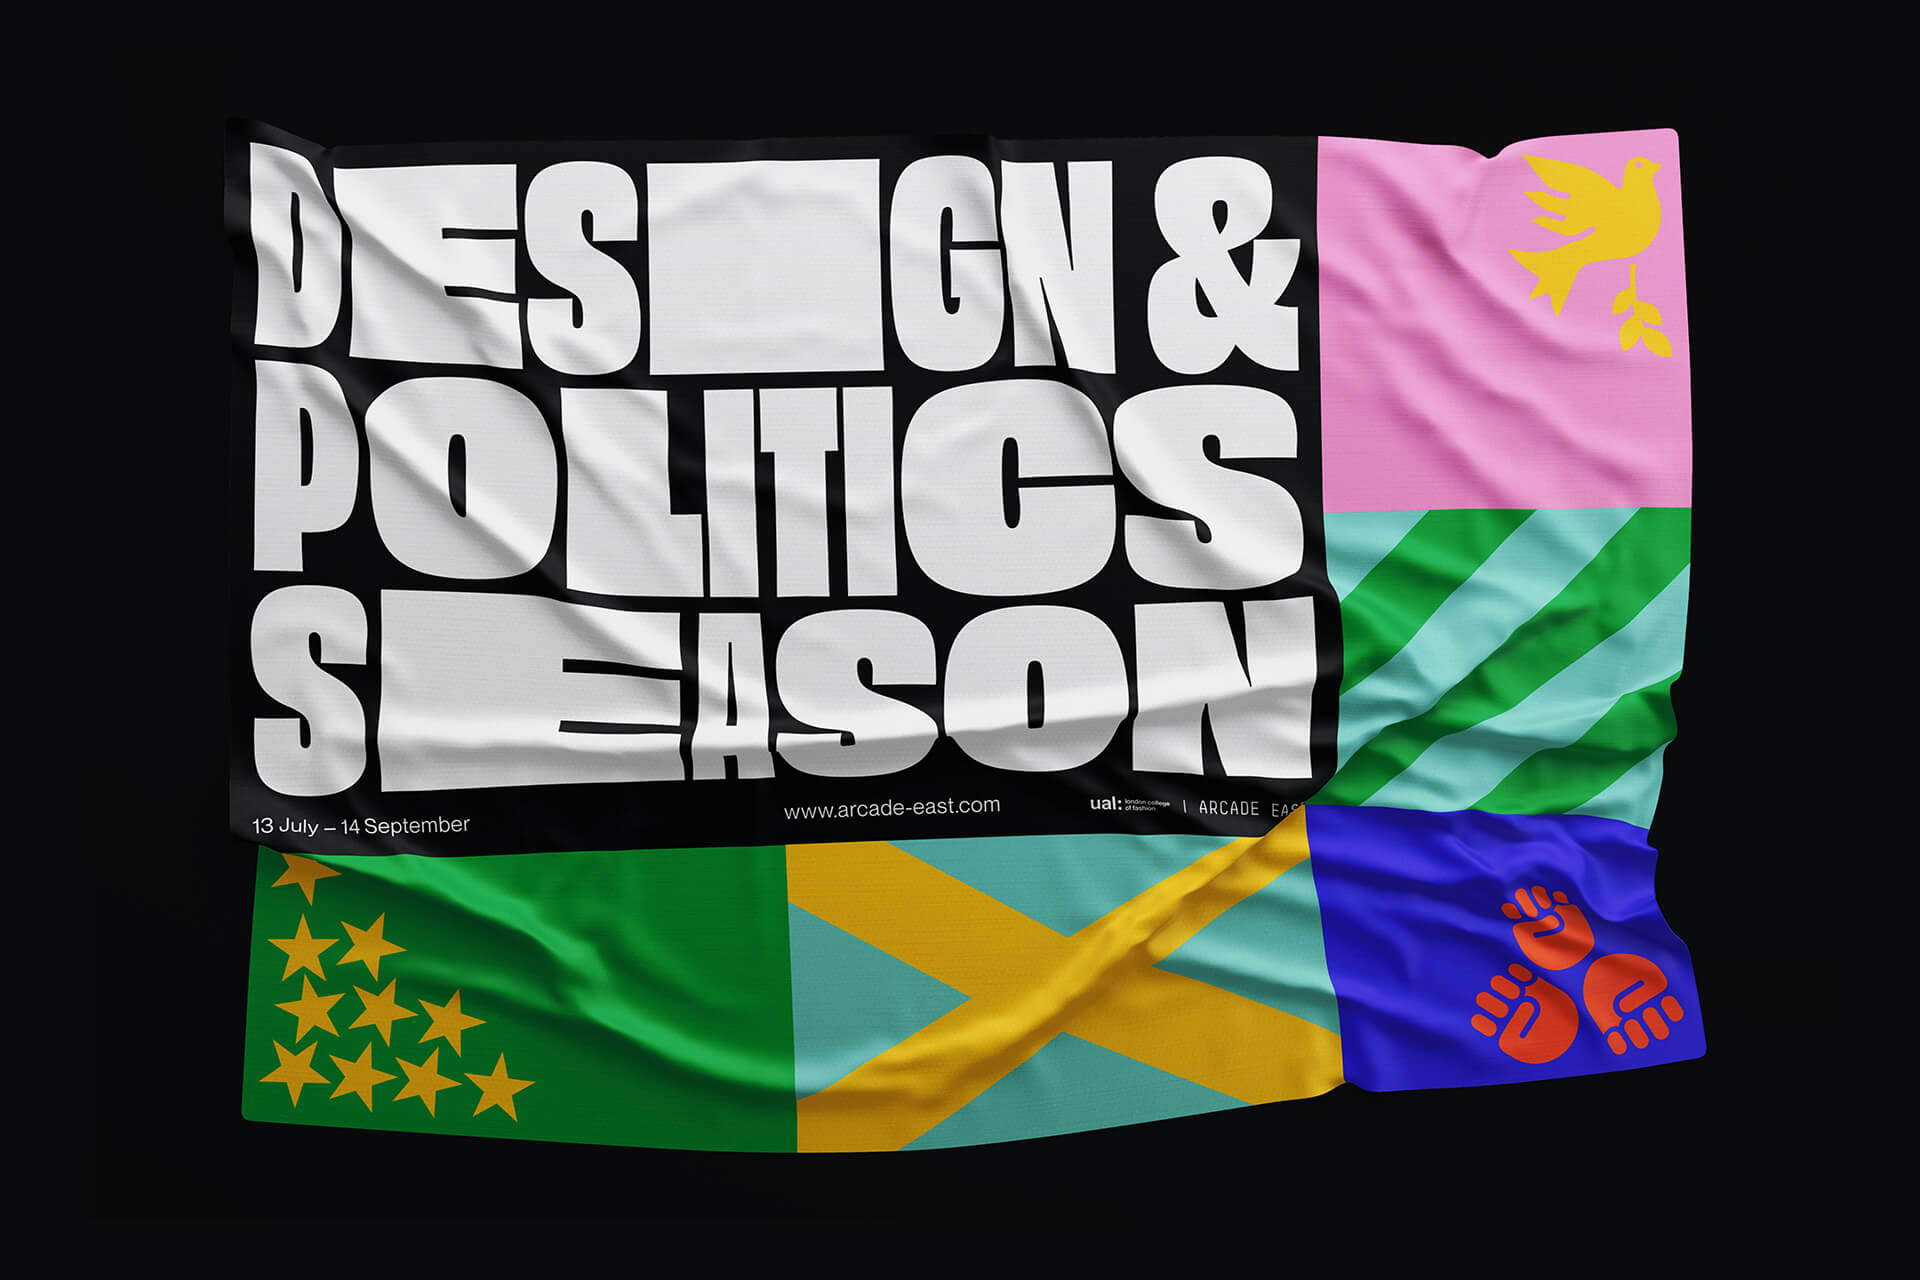 LCF_Design-Politics-Season_Flag